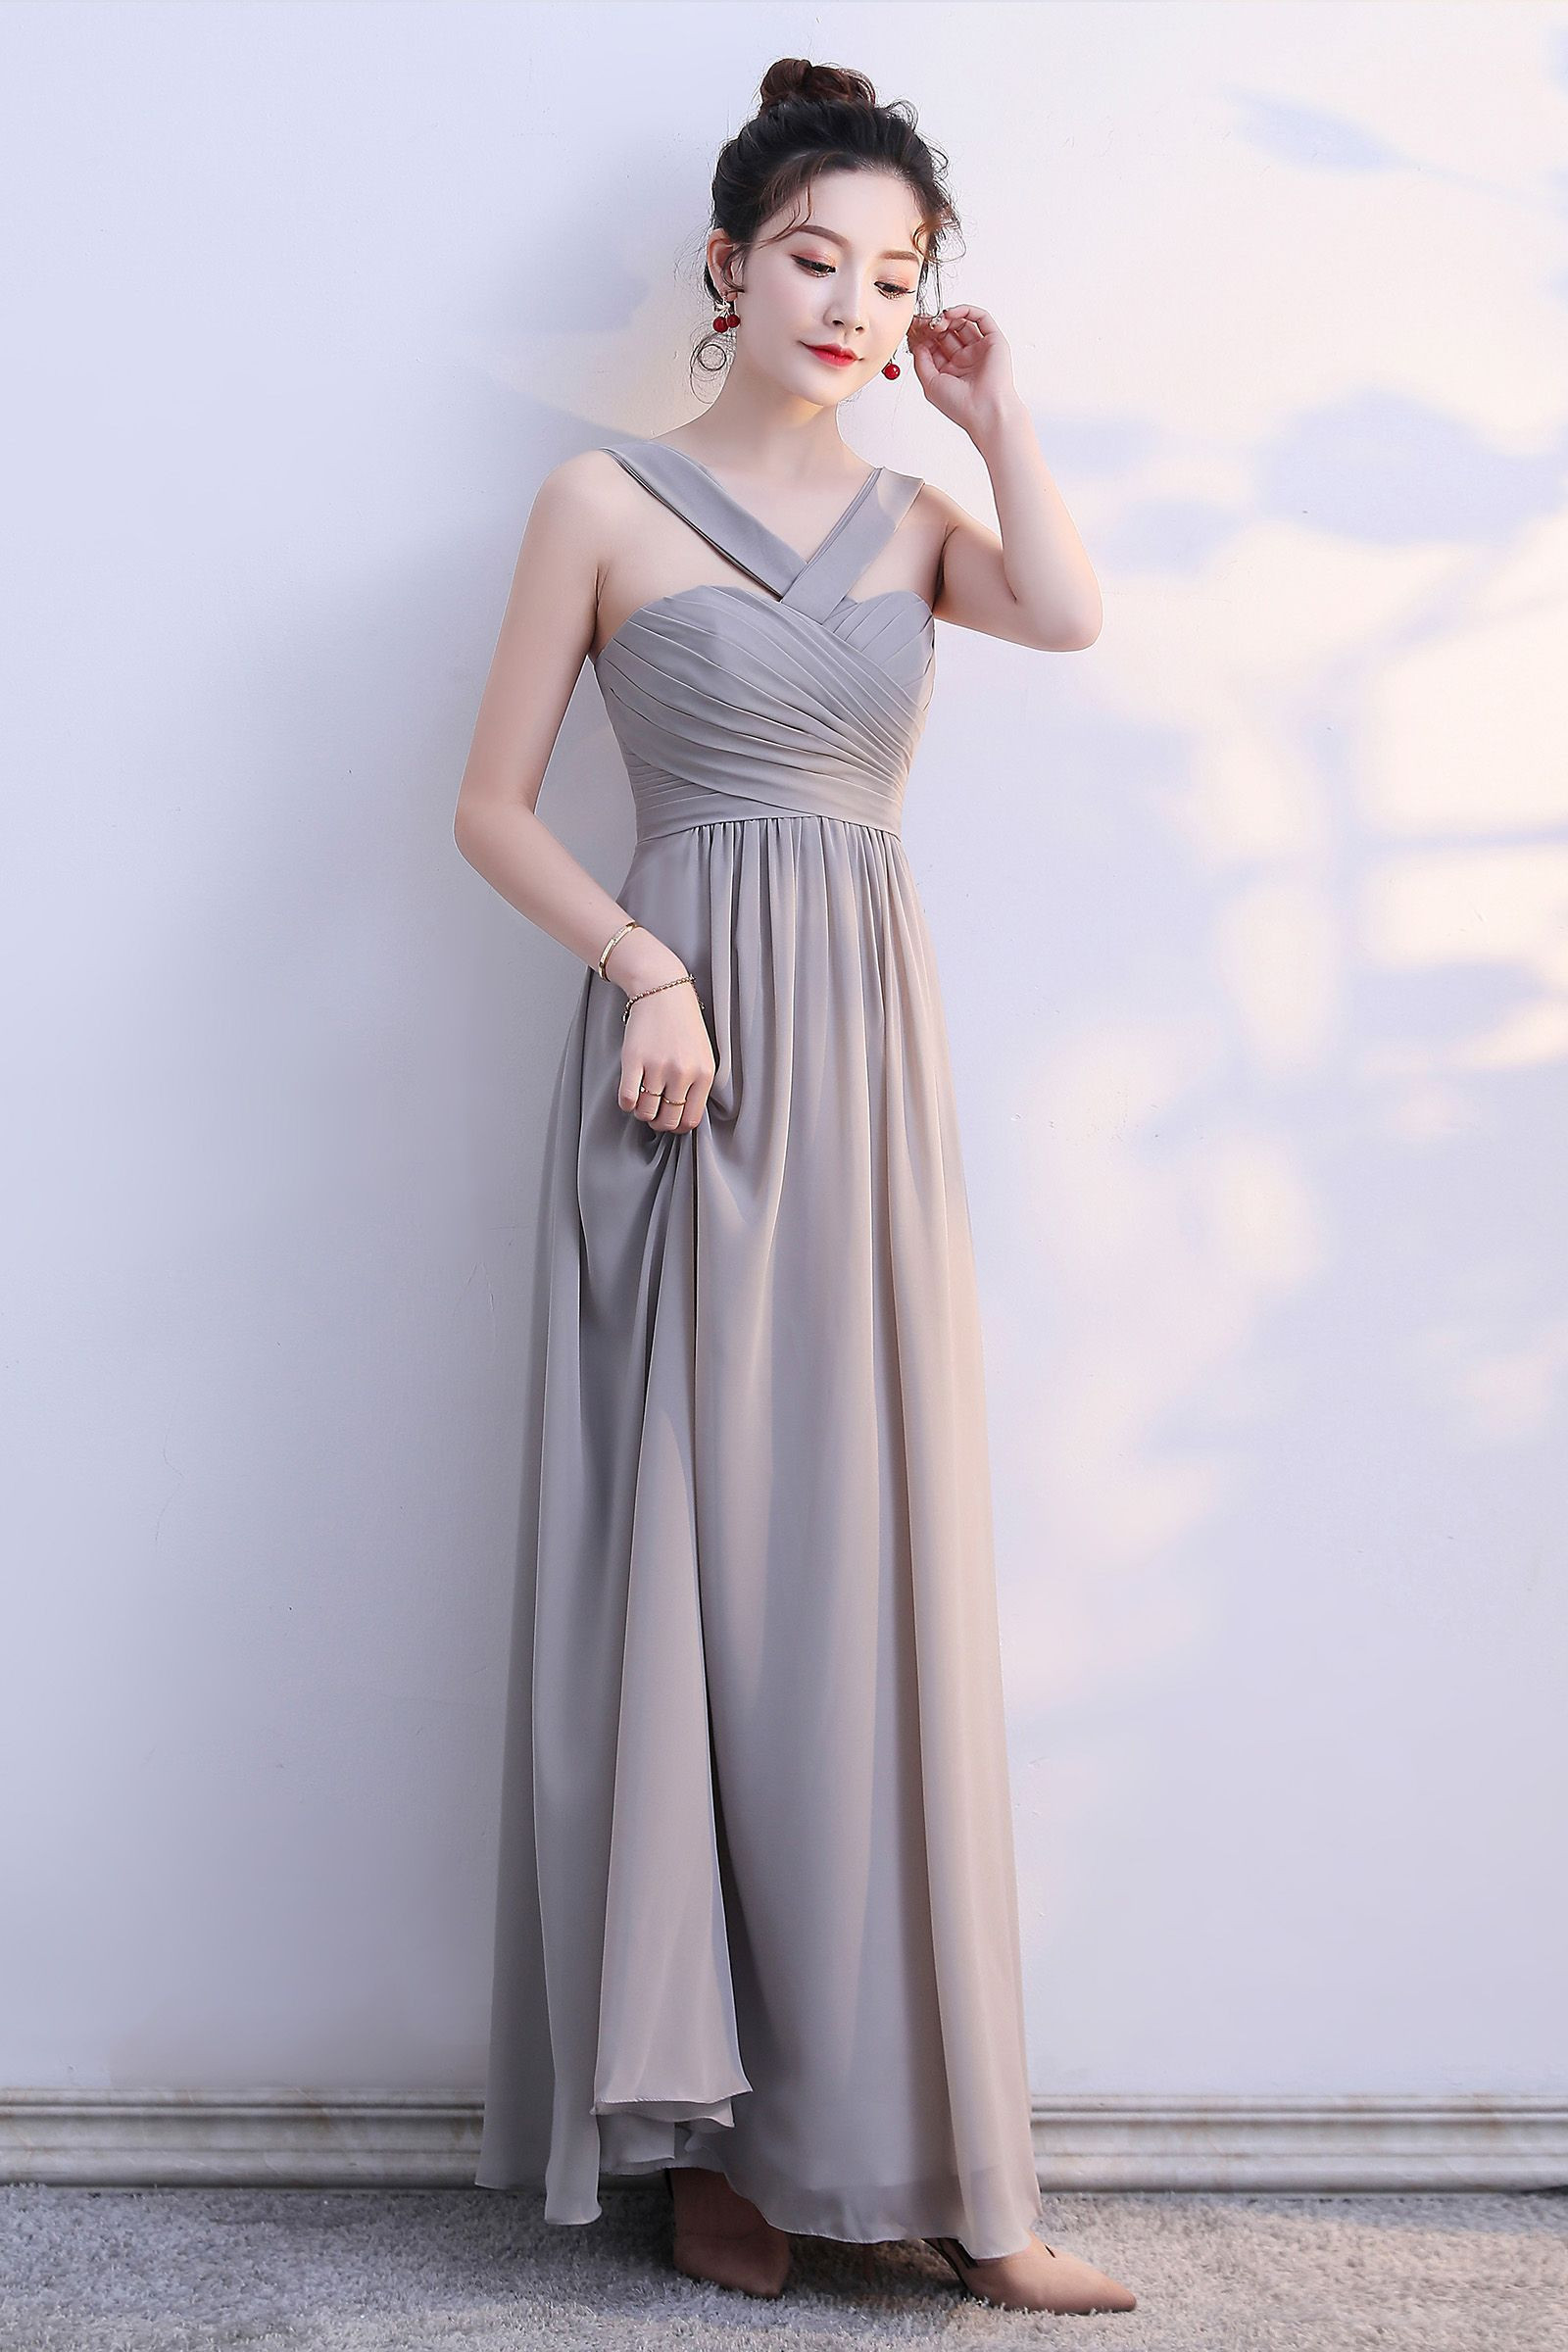 Import Gray Chiffon Prom Gown Evening Dress from China